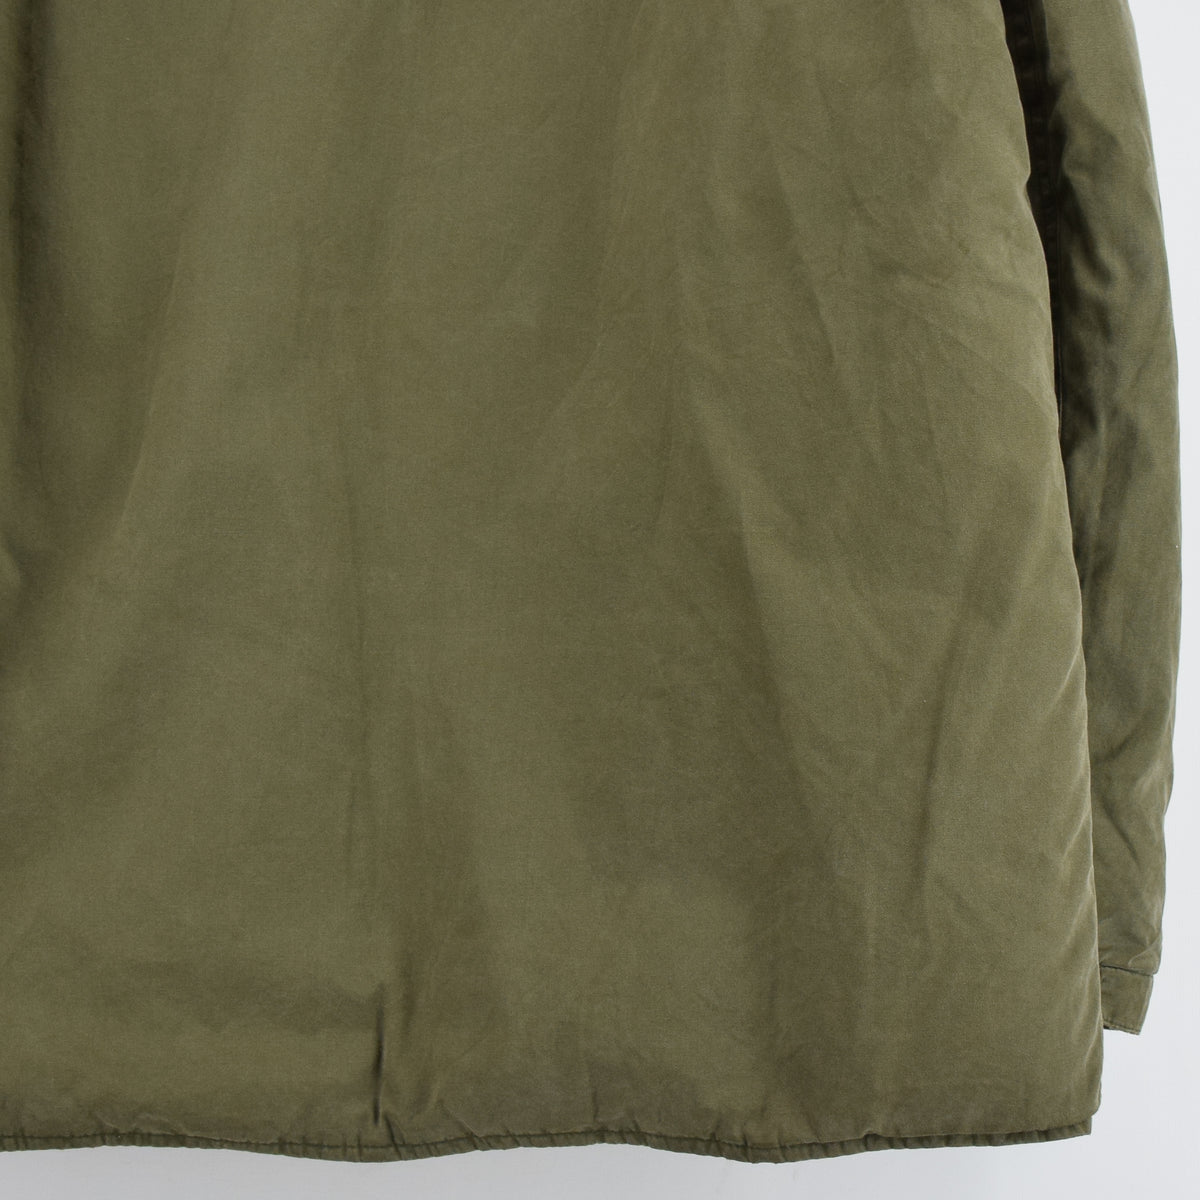 Ralph Lauren Polo Military Style Green Down Parka Jacket Shearling Trim Hood M back hem